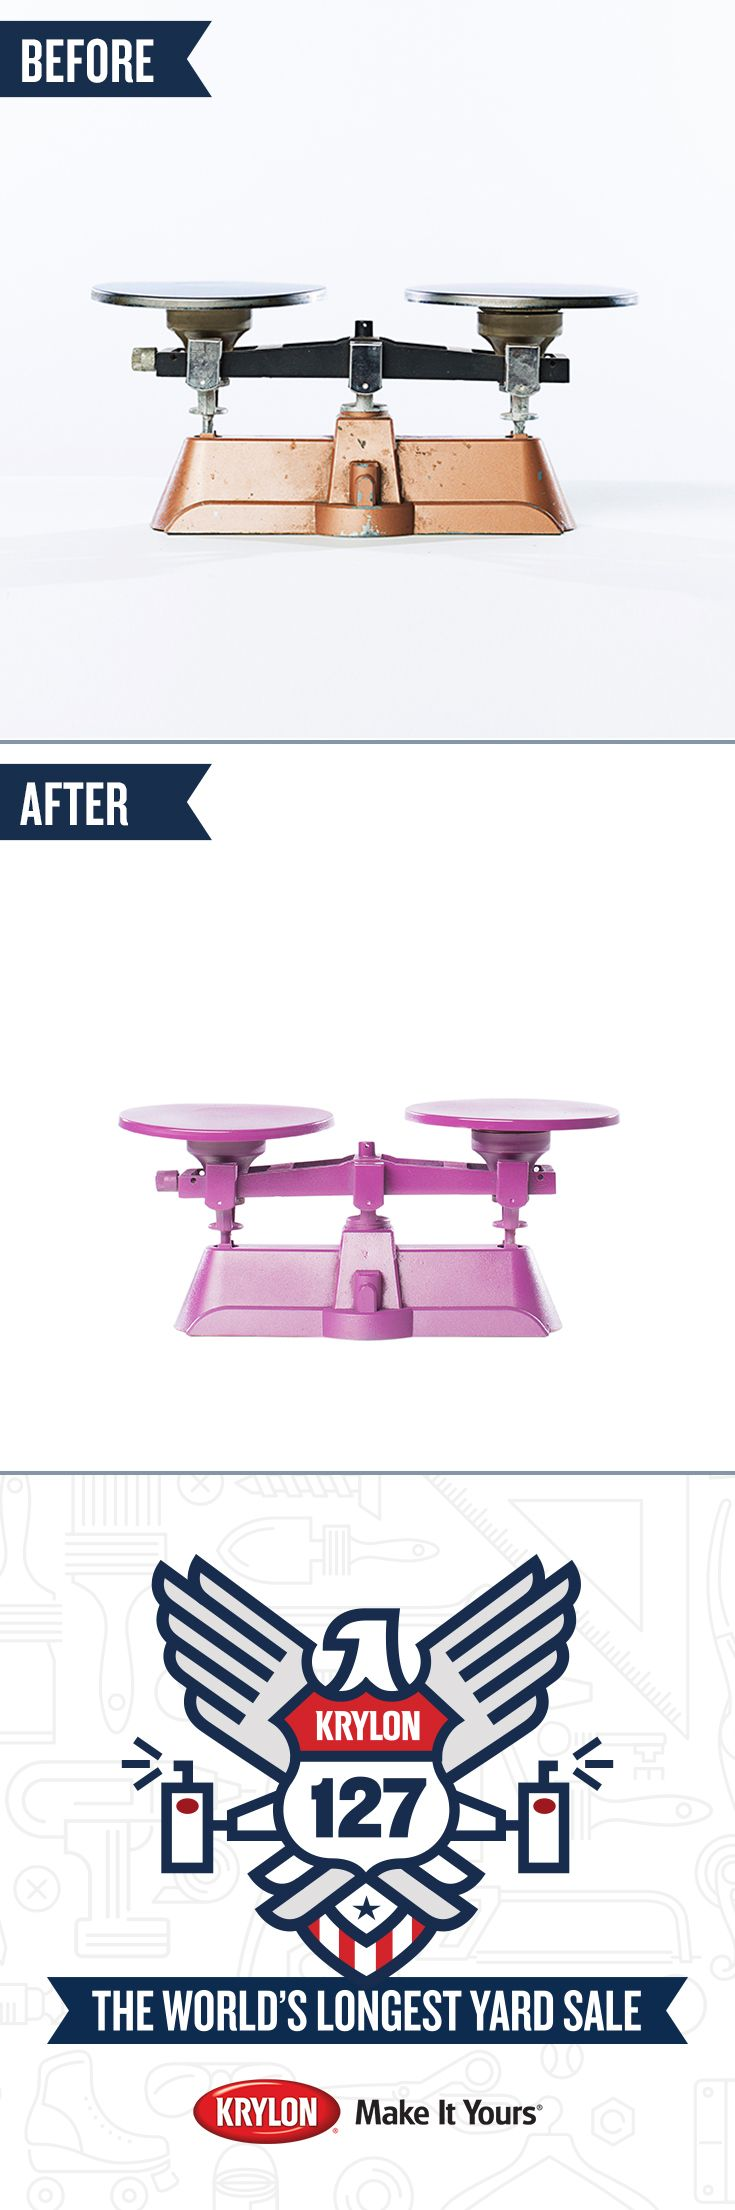 Scale up your décor! Transform an ordinary metal scale into a work of art with Krylon ColorMaster Paint + Primer in Rich Plum. Let this makeover from the #Krylon127YardSale inspire you to turn your yard sale finds into treasures.